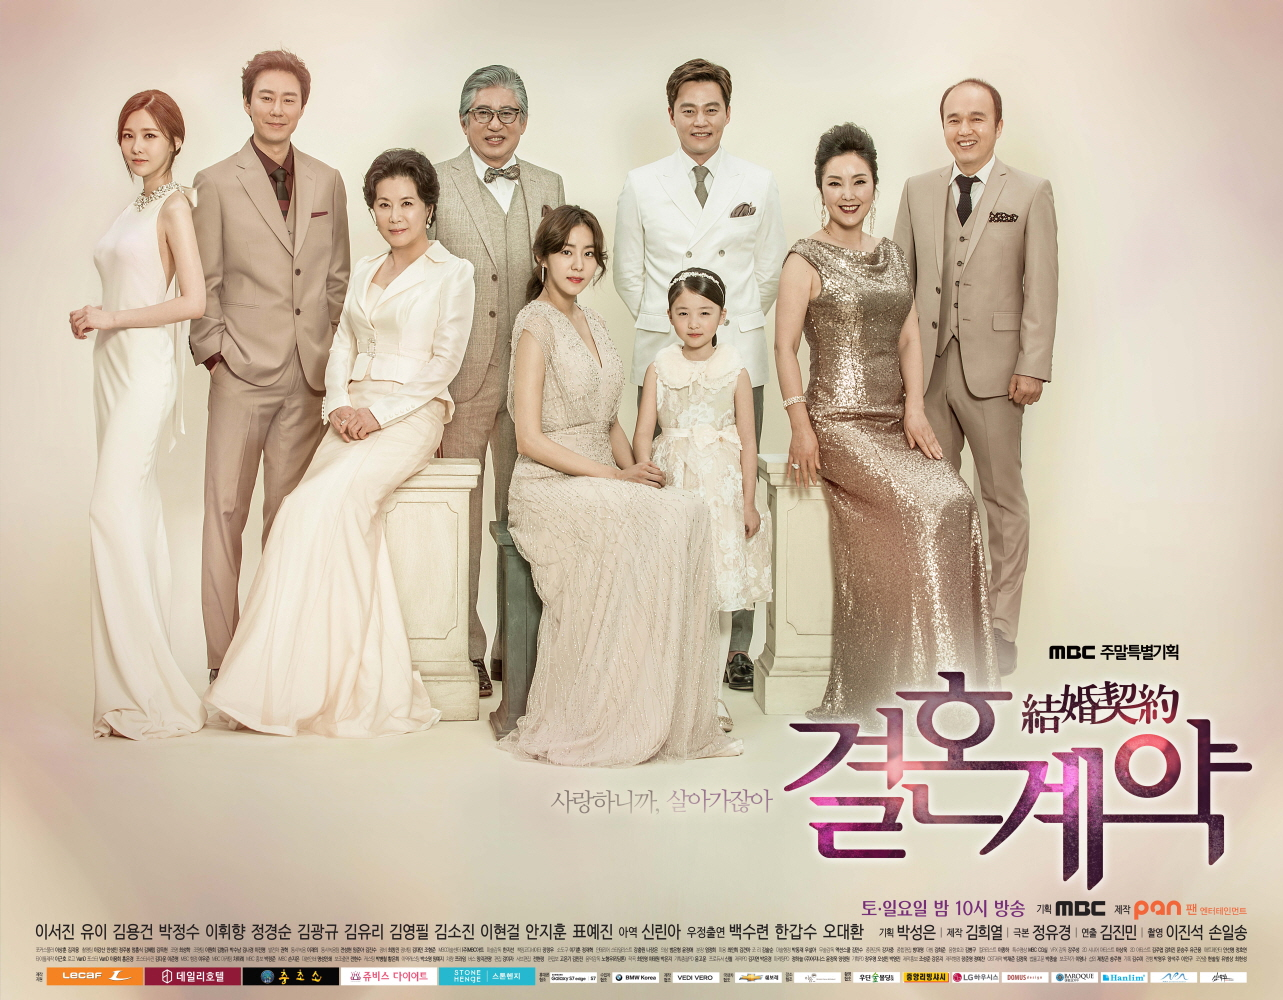 """Marriage Contract"" Off to a Promising Start With Strong Premiere Ratings"